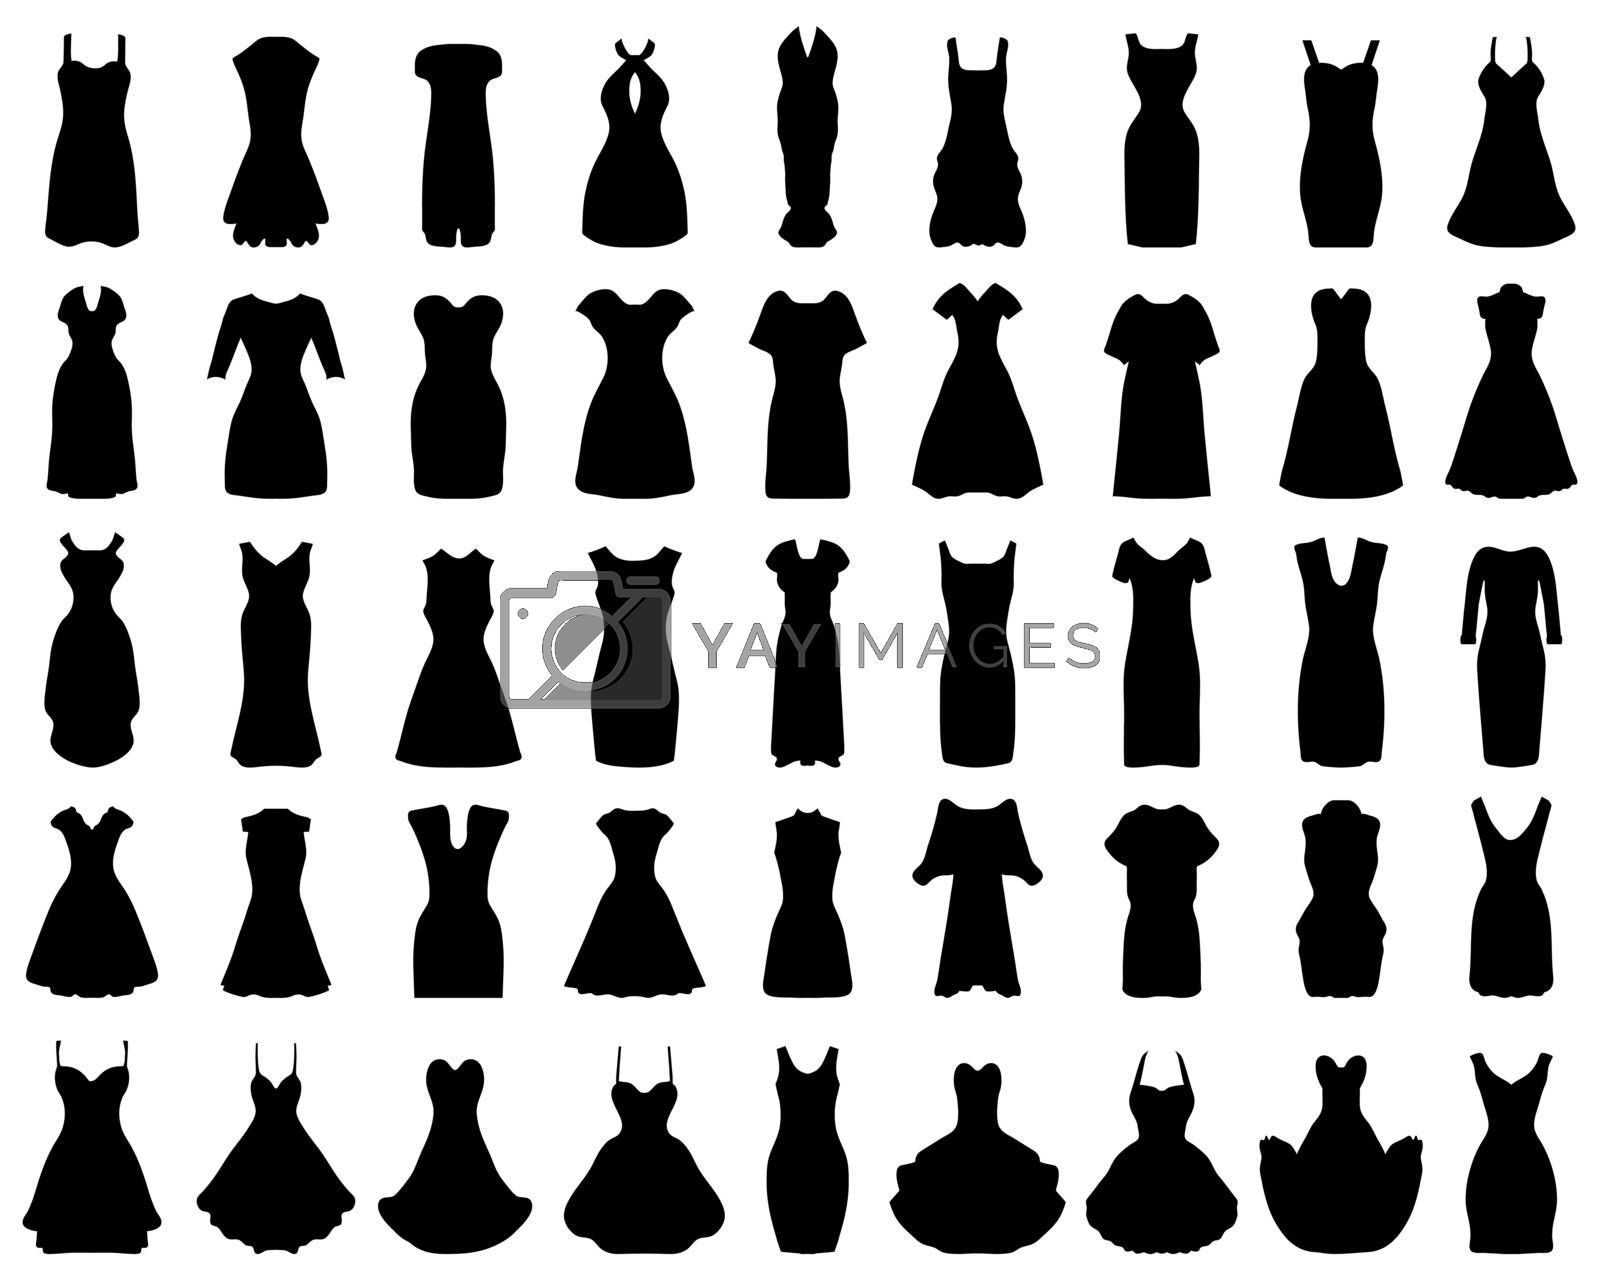 Black silhouettes of women's dresses on a white background